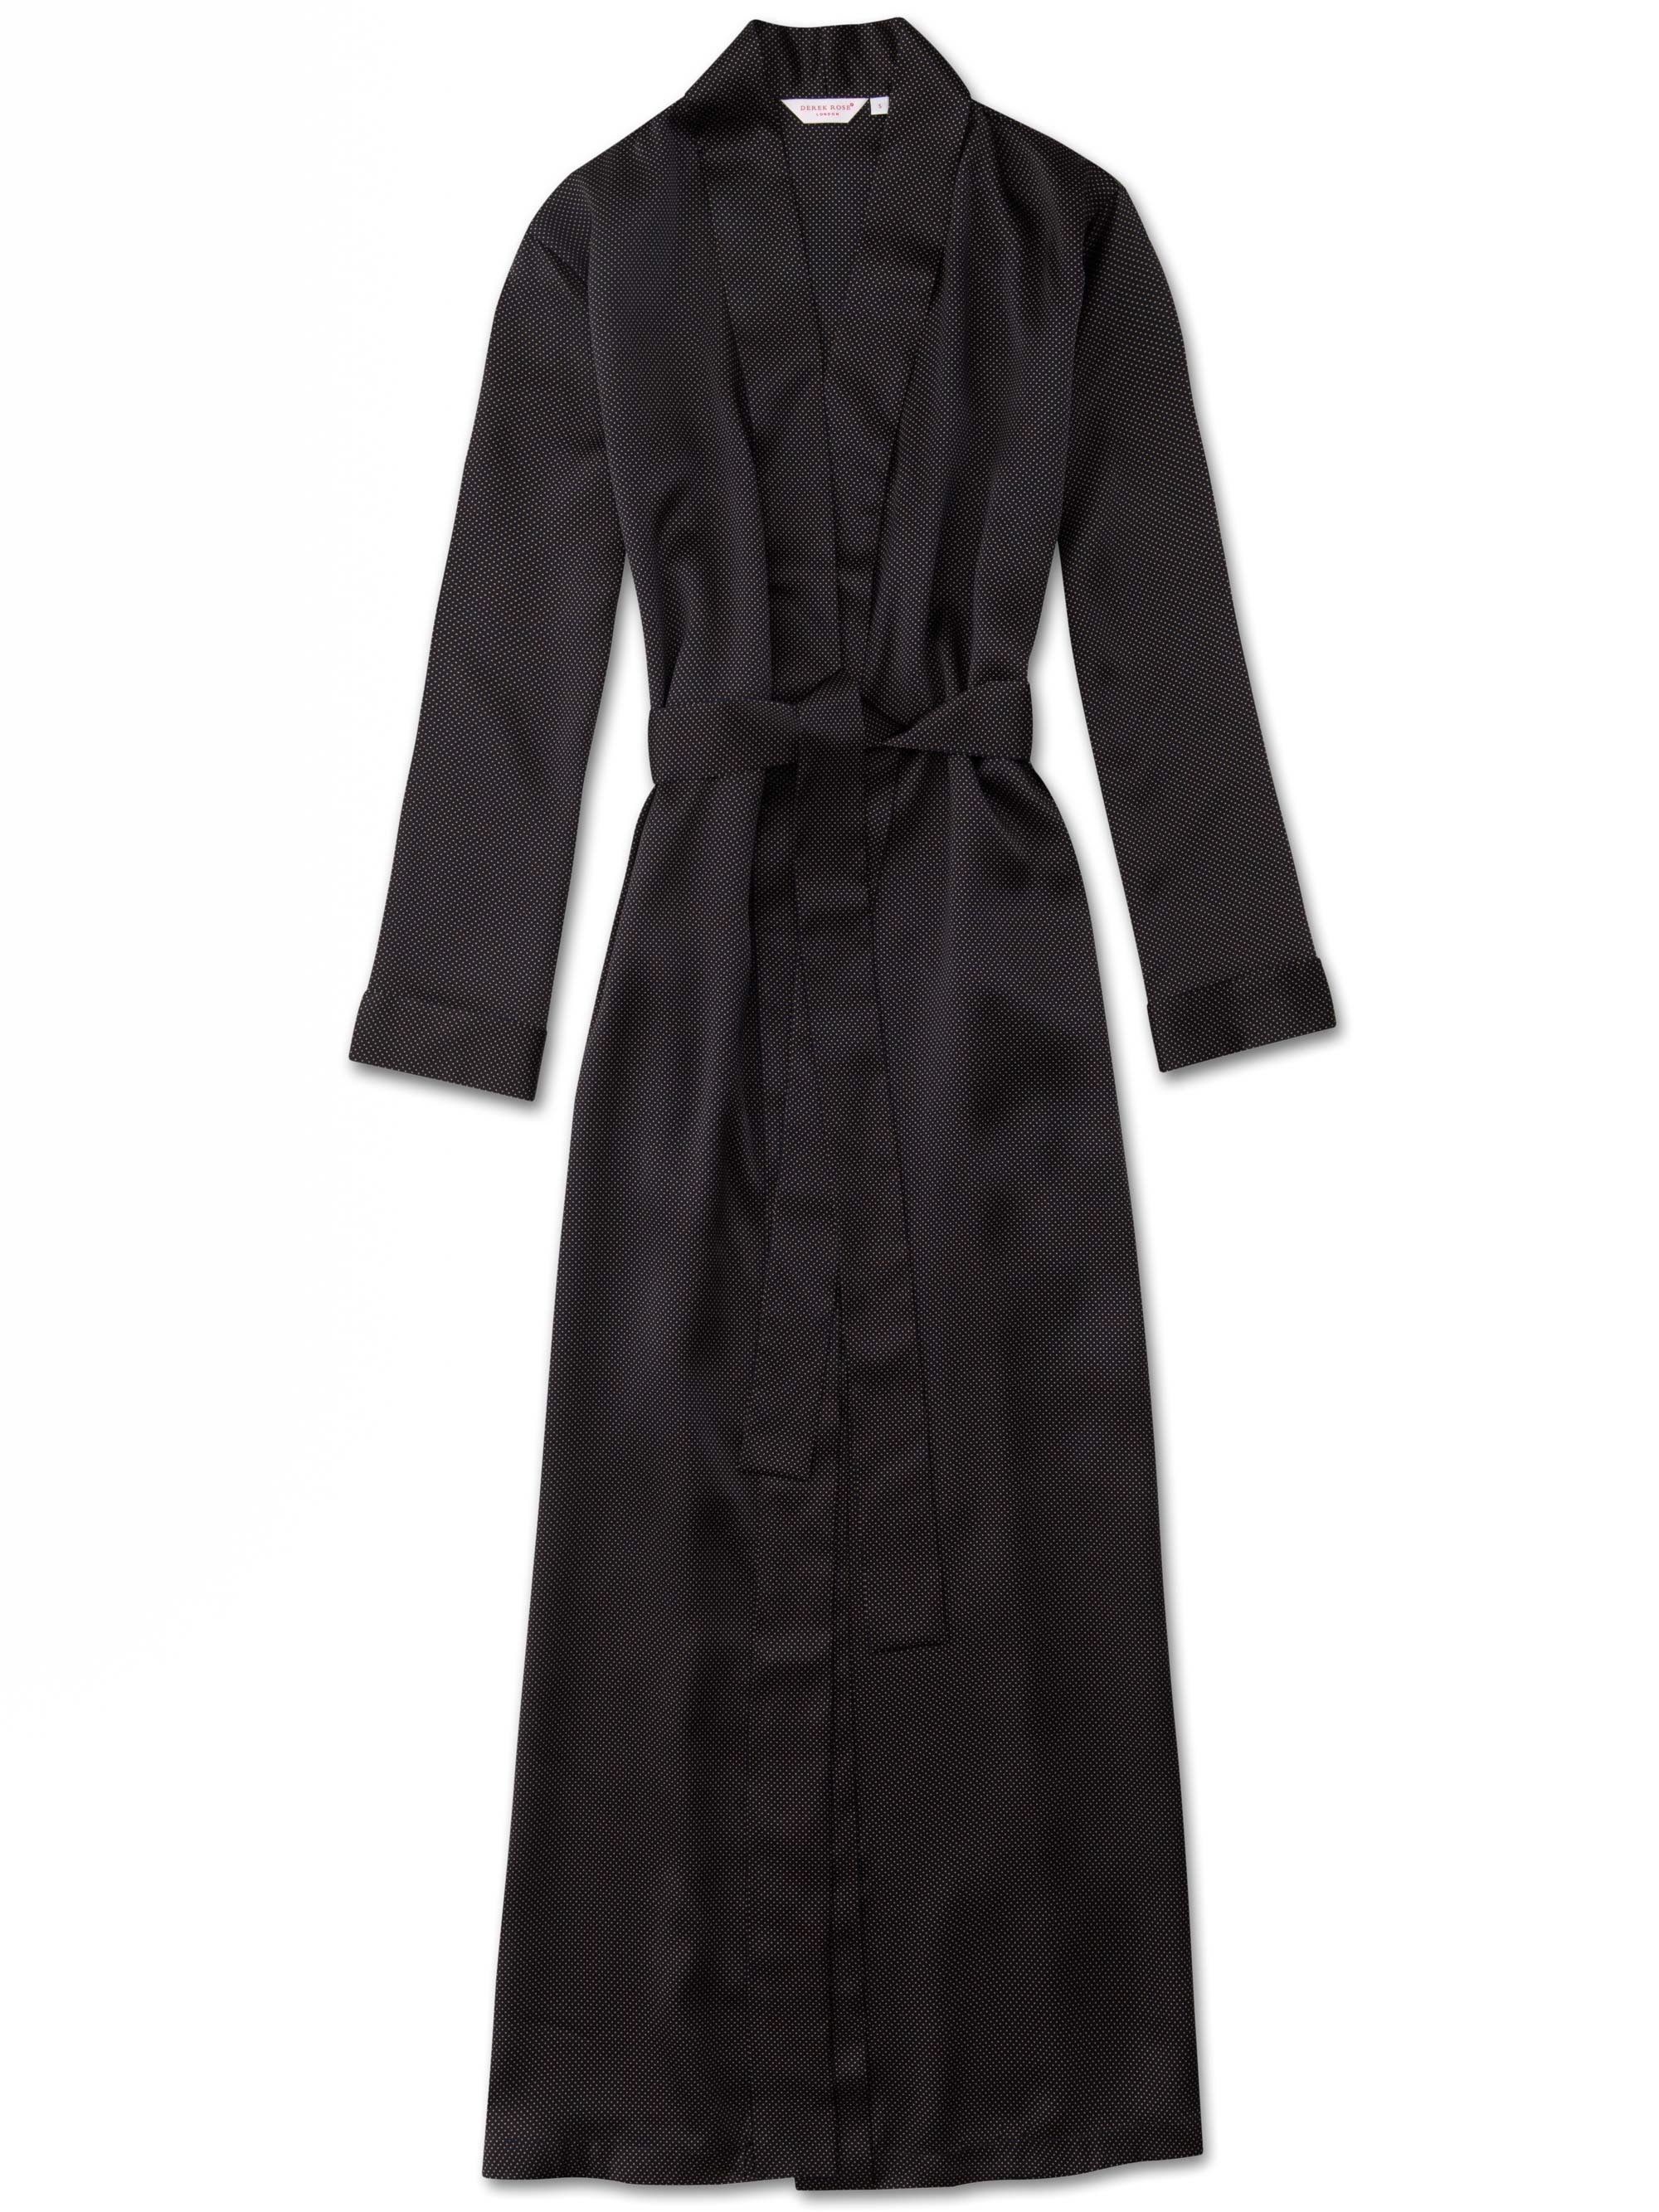 Women's Full Length Dressing Gown Brindisi 45 Pure Silk Satin Navy